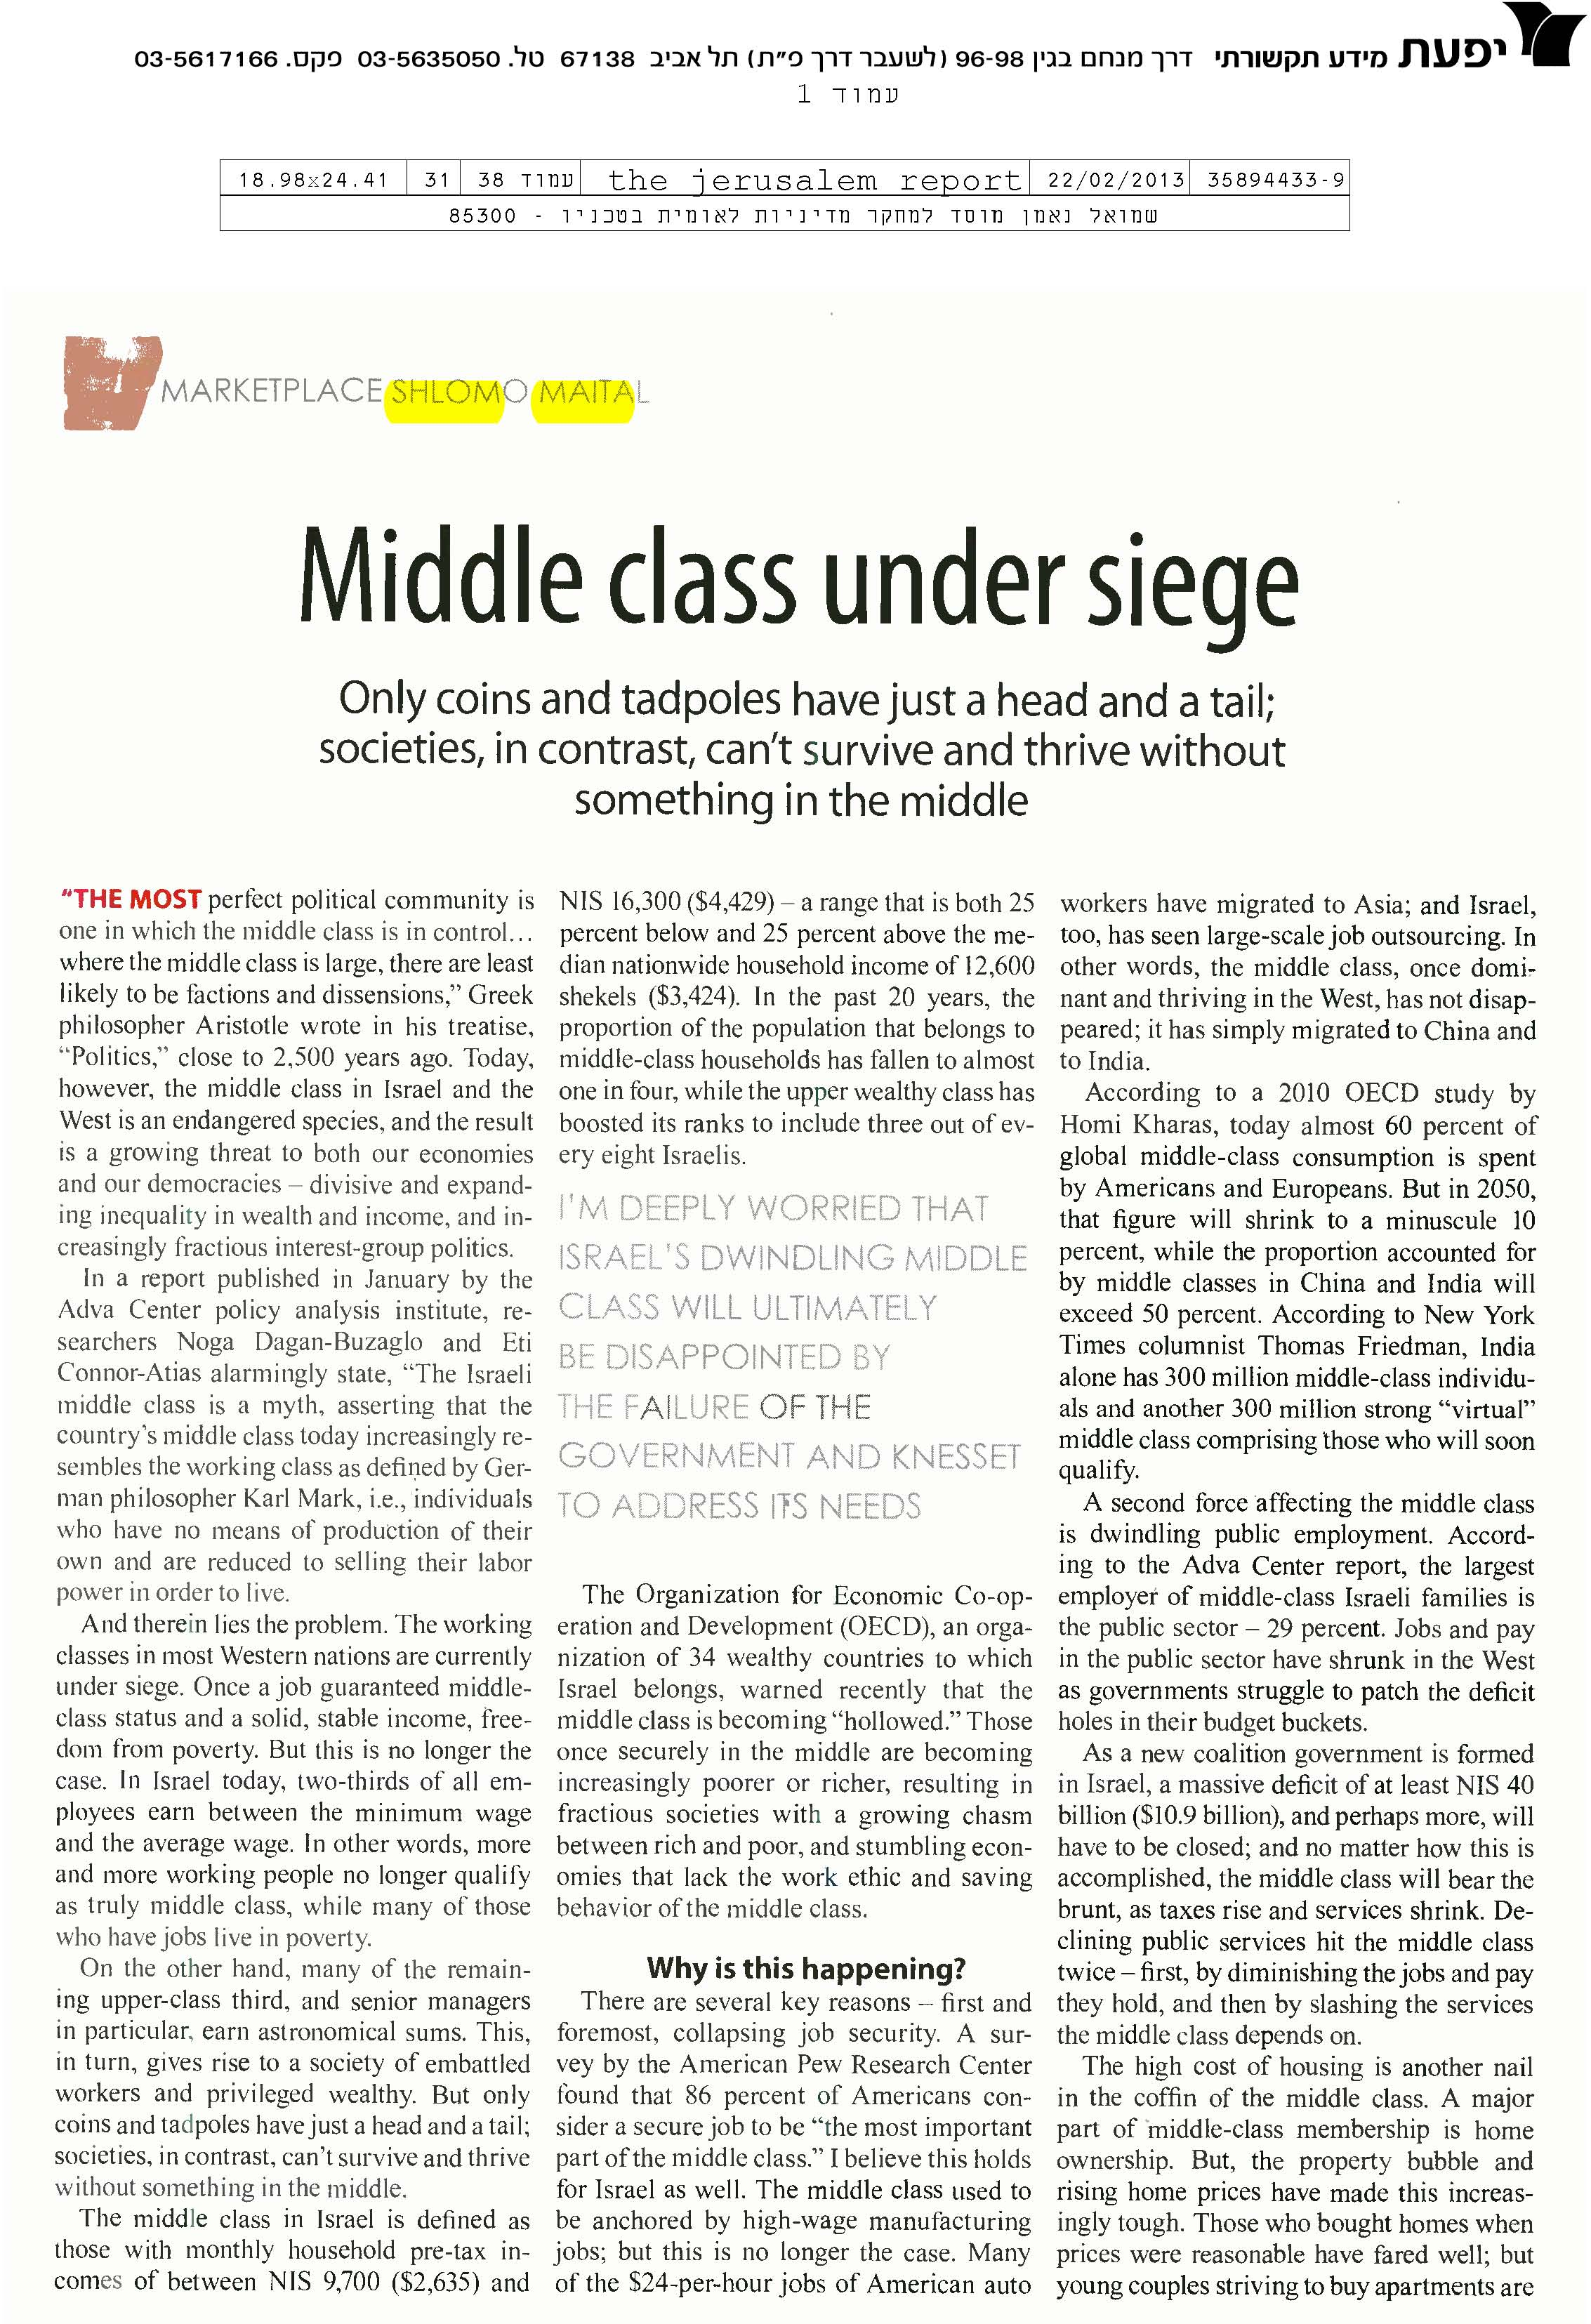 Middle class under siege